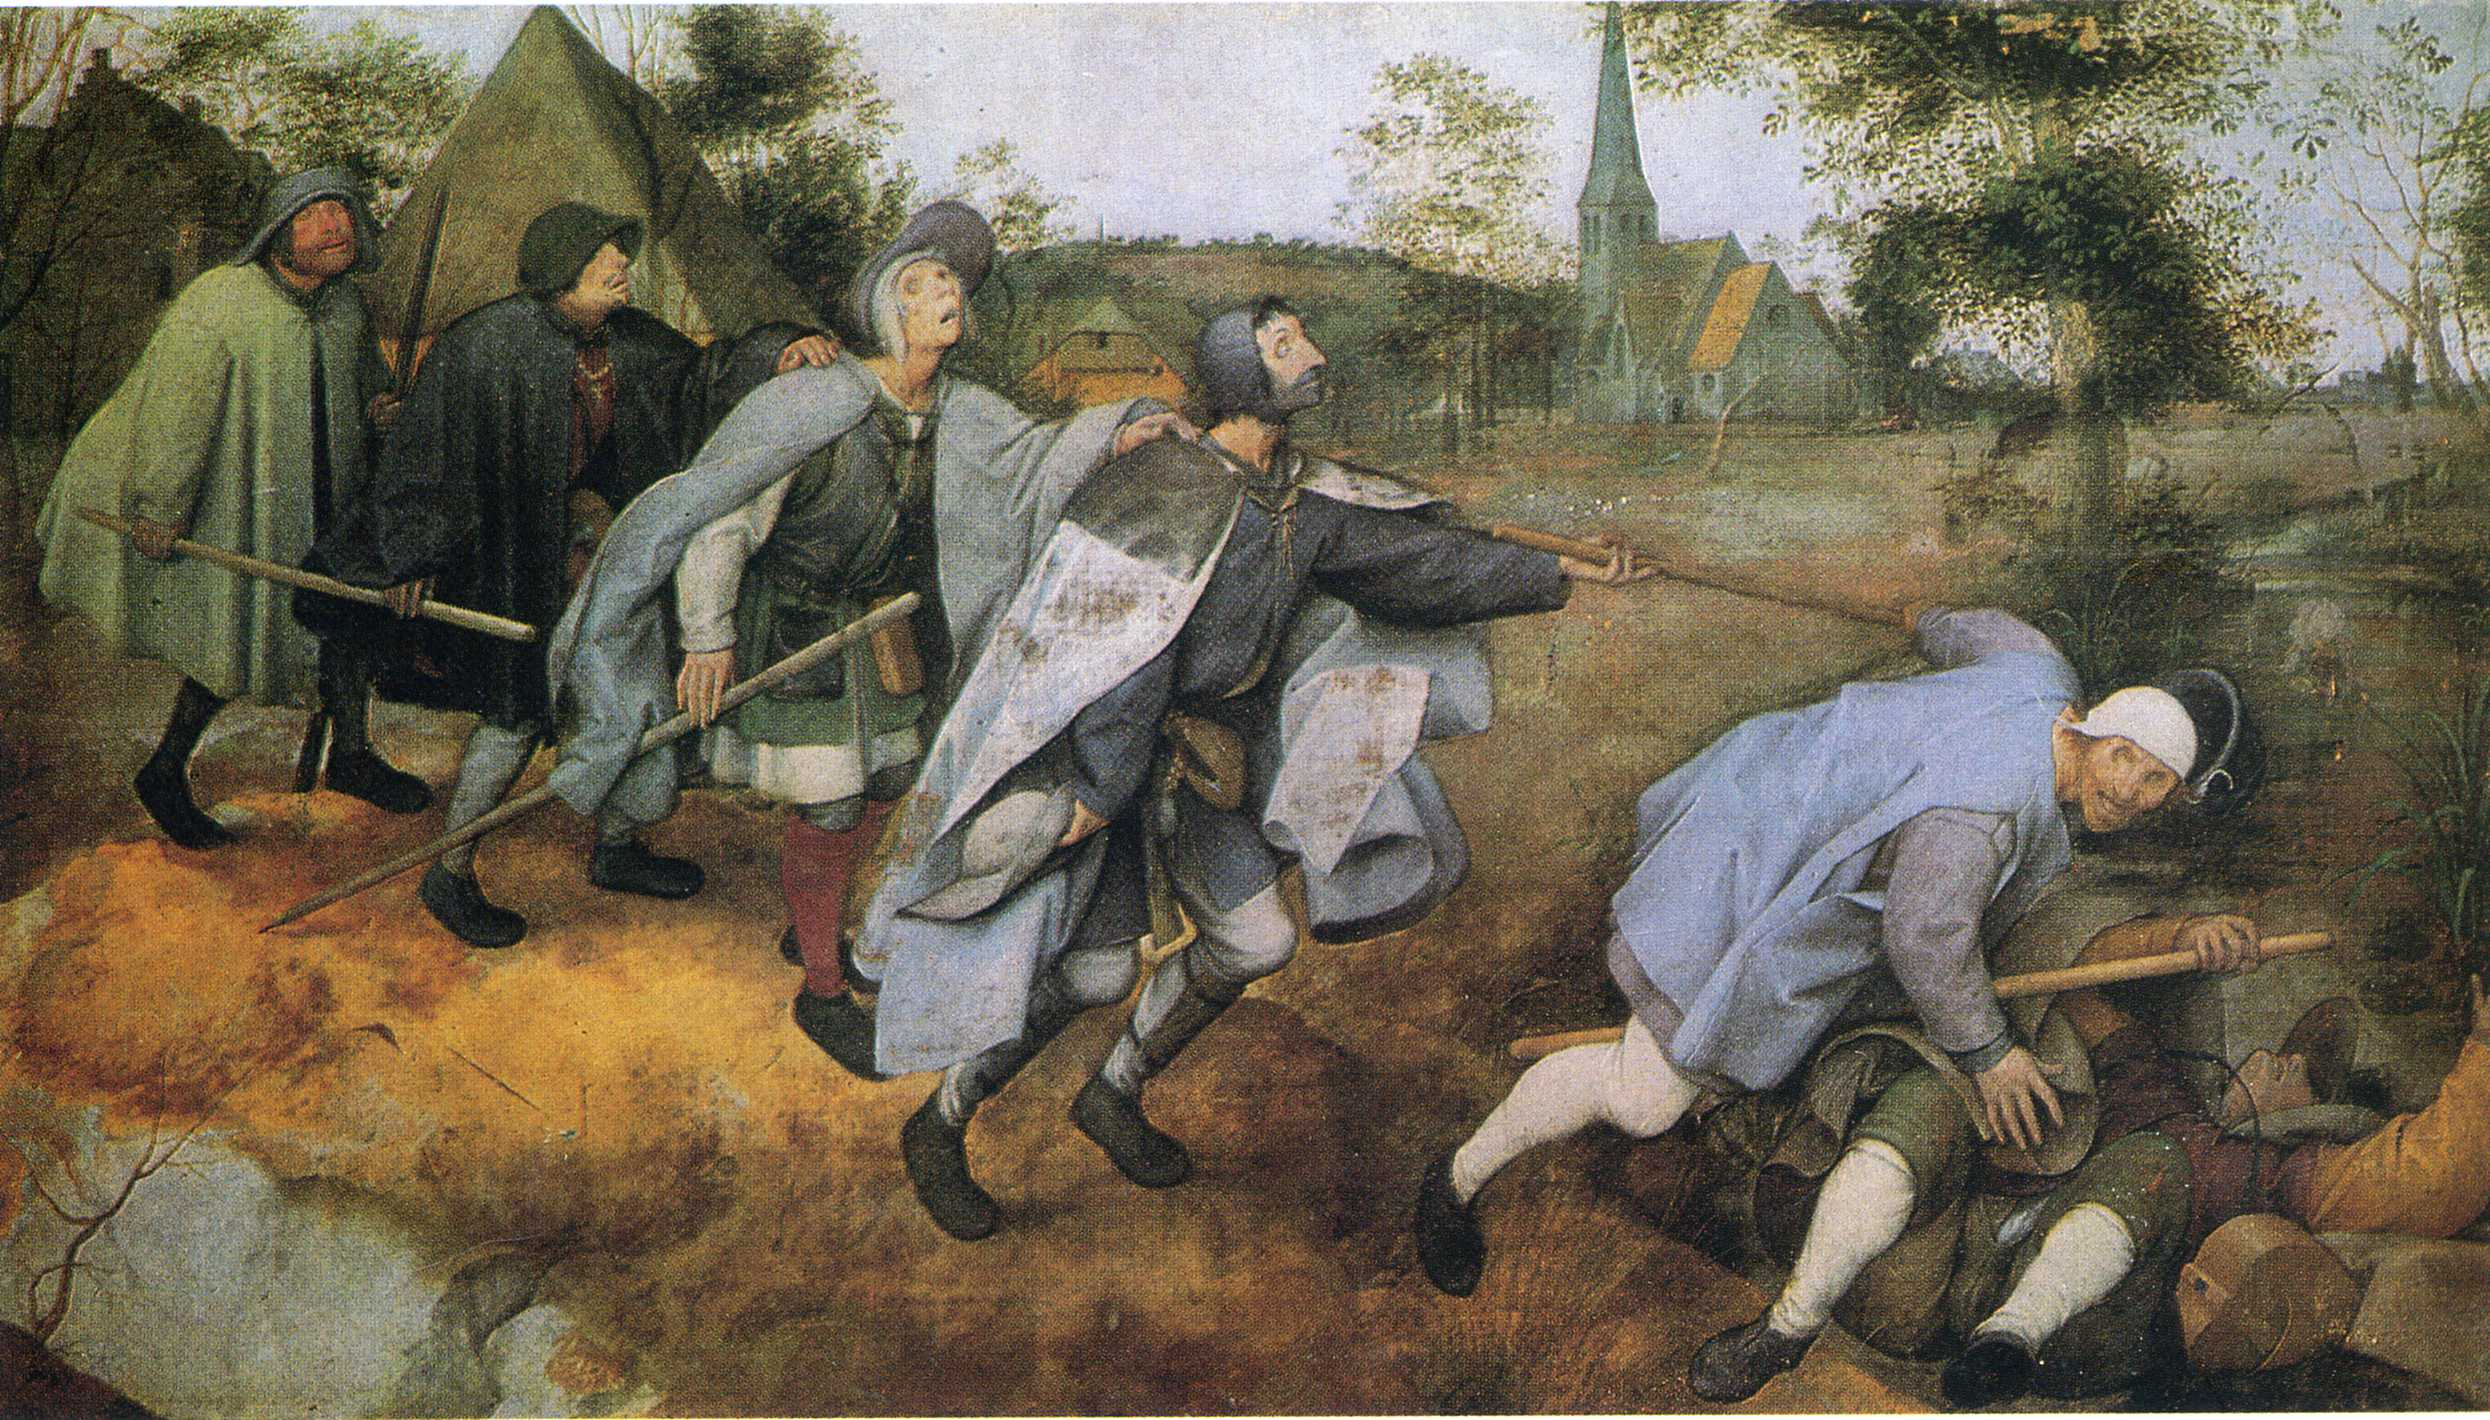 Parable of the Blind, 1568